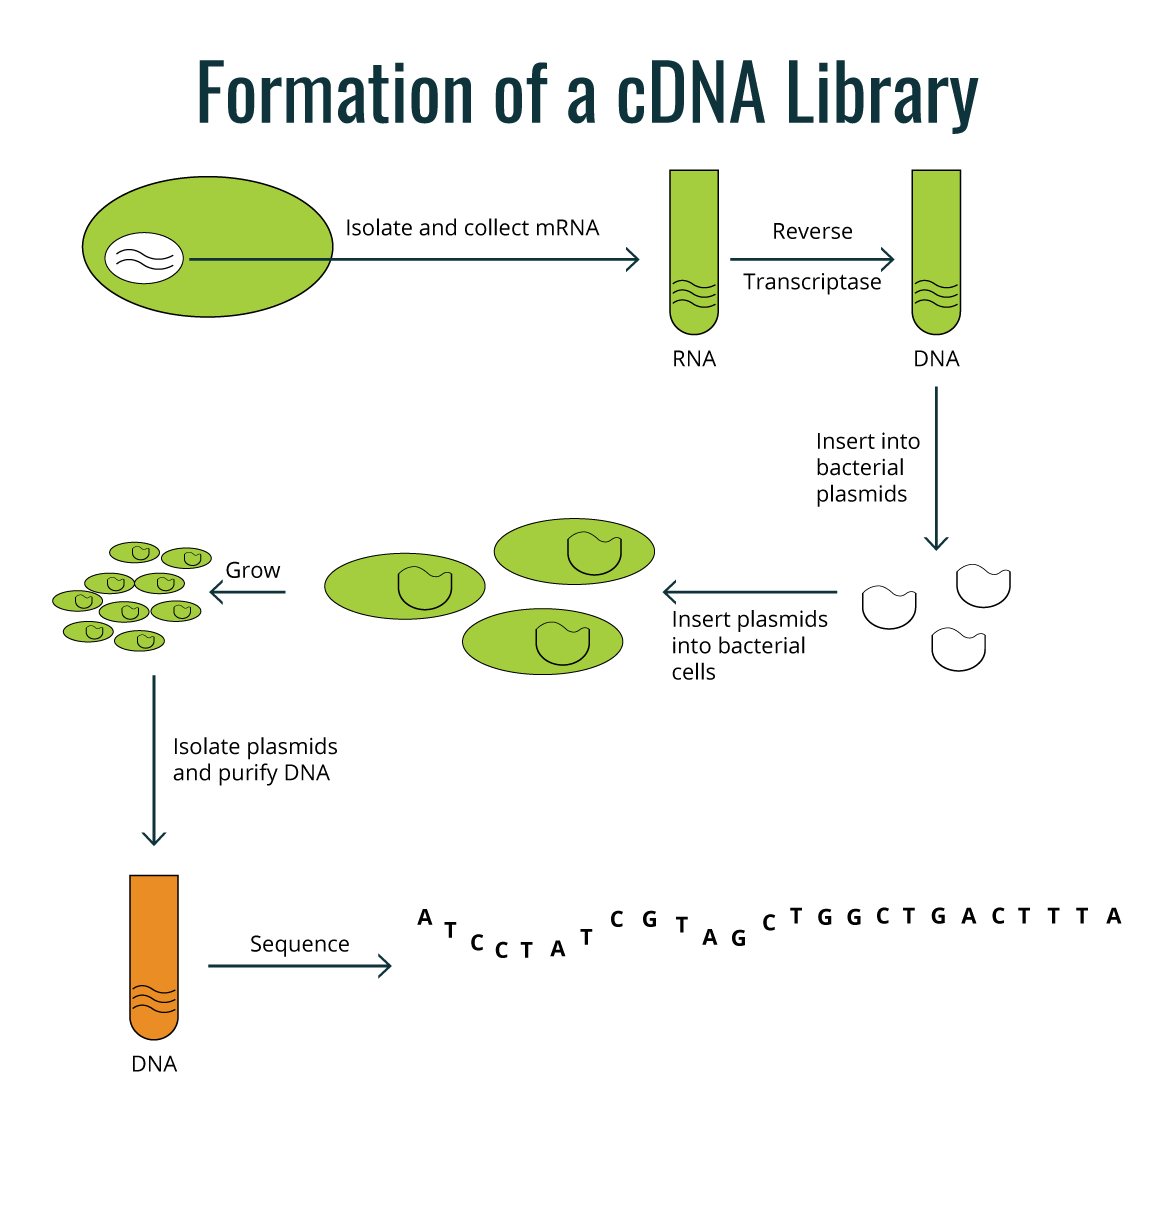 Formation of a cDNA Library